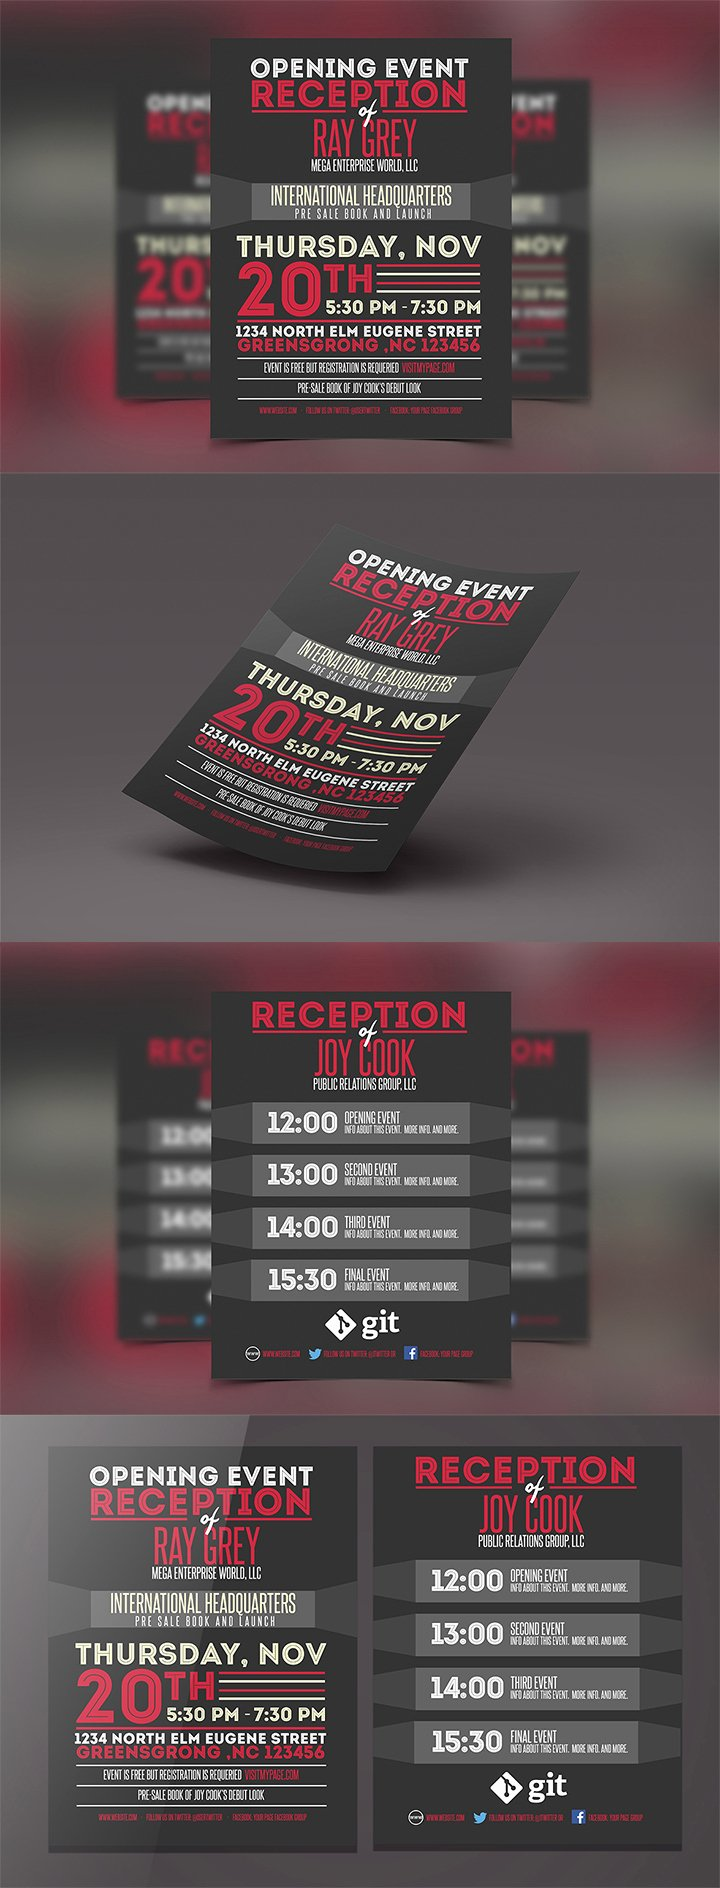 Conference Program Booklet Template Fresh event Program Template Psd Flyer Brochure Graphicfy